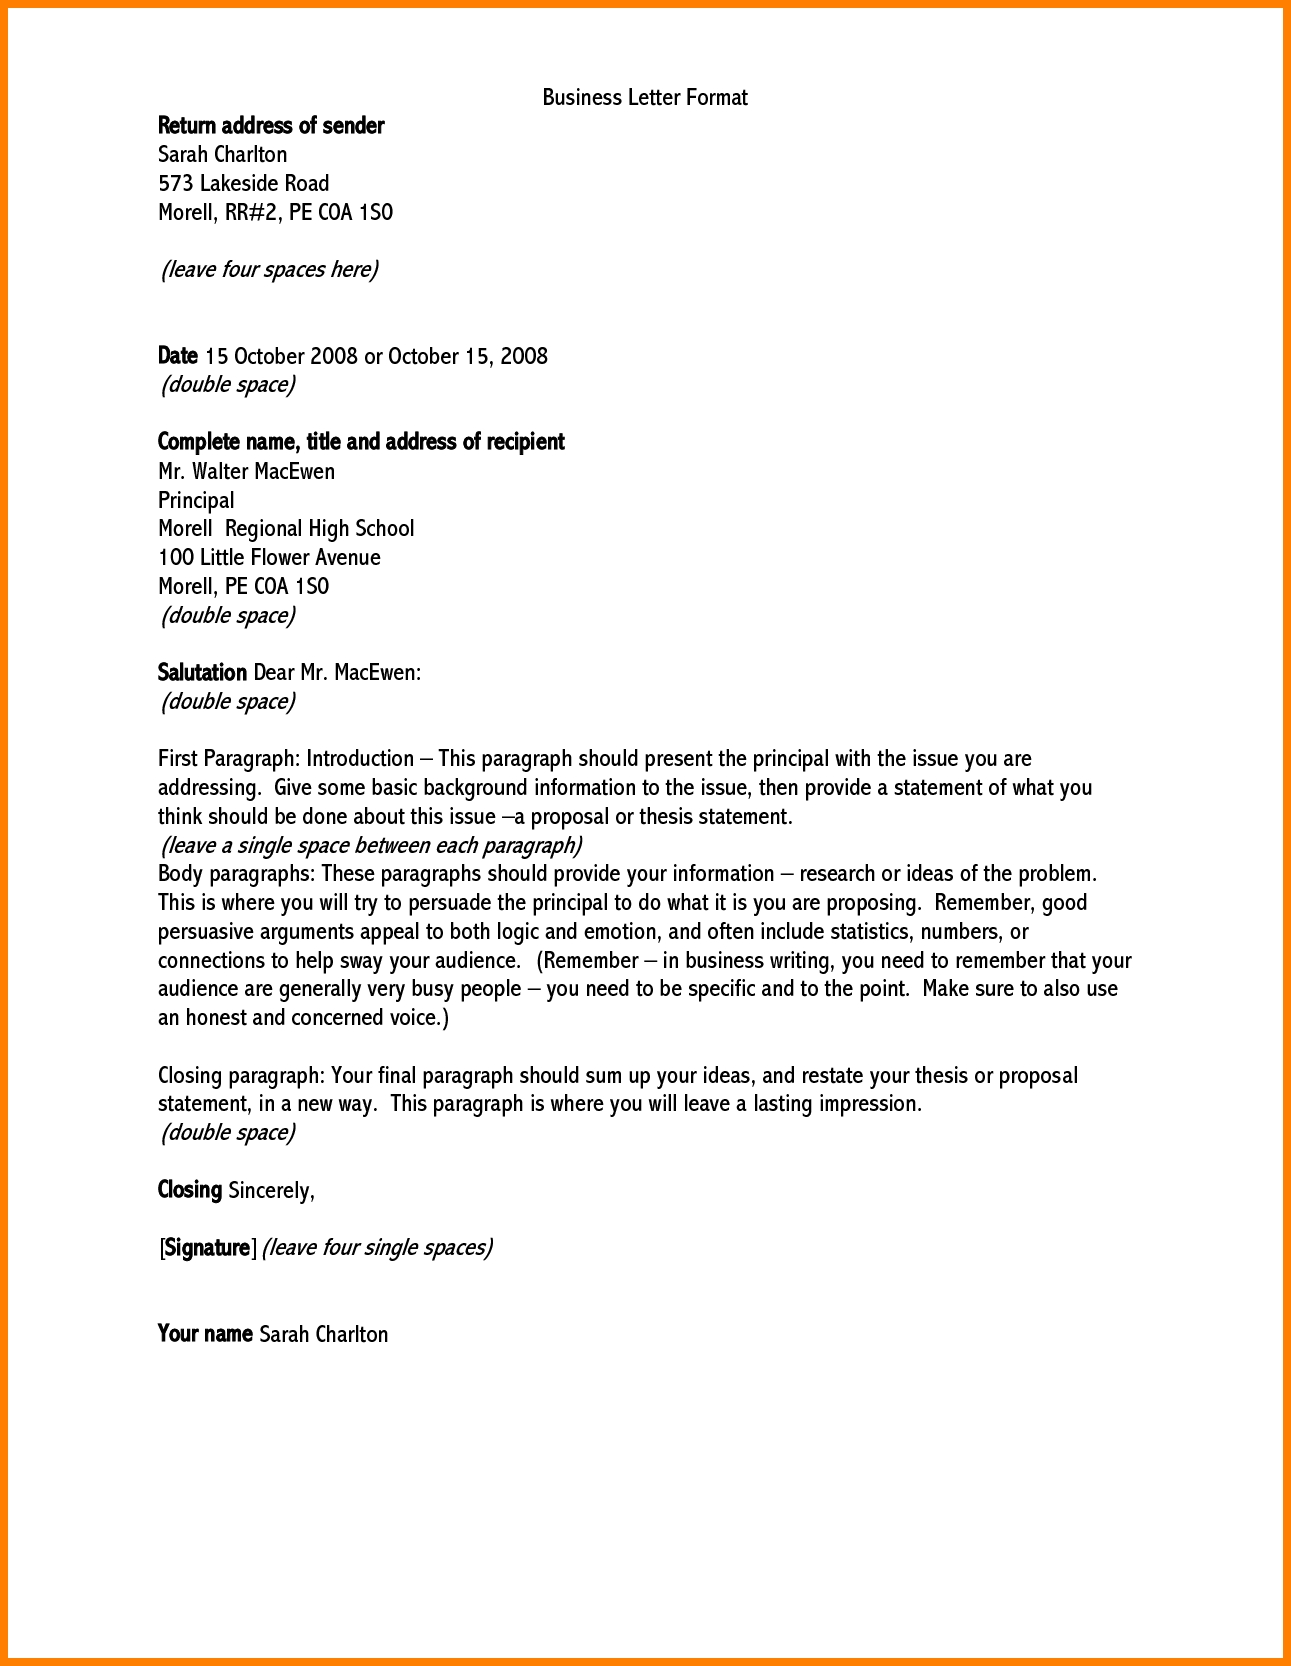 Business Letter Addressing 0 – elrey de bodas